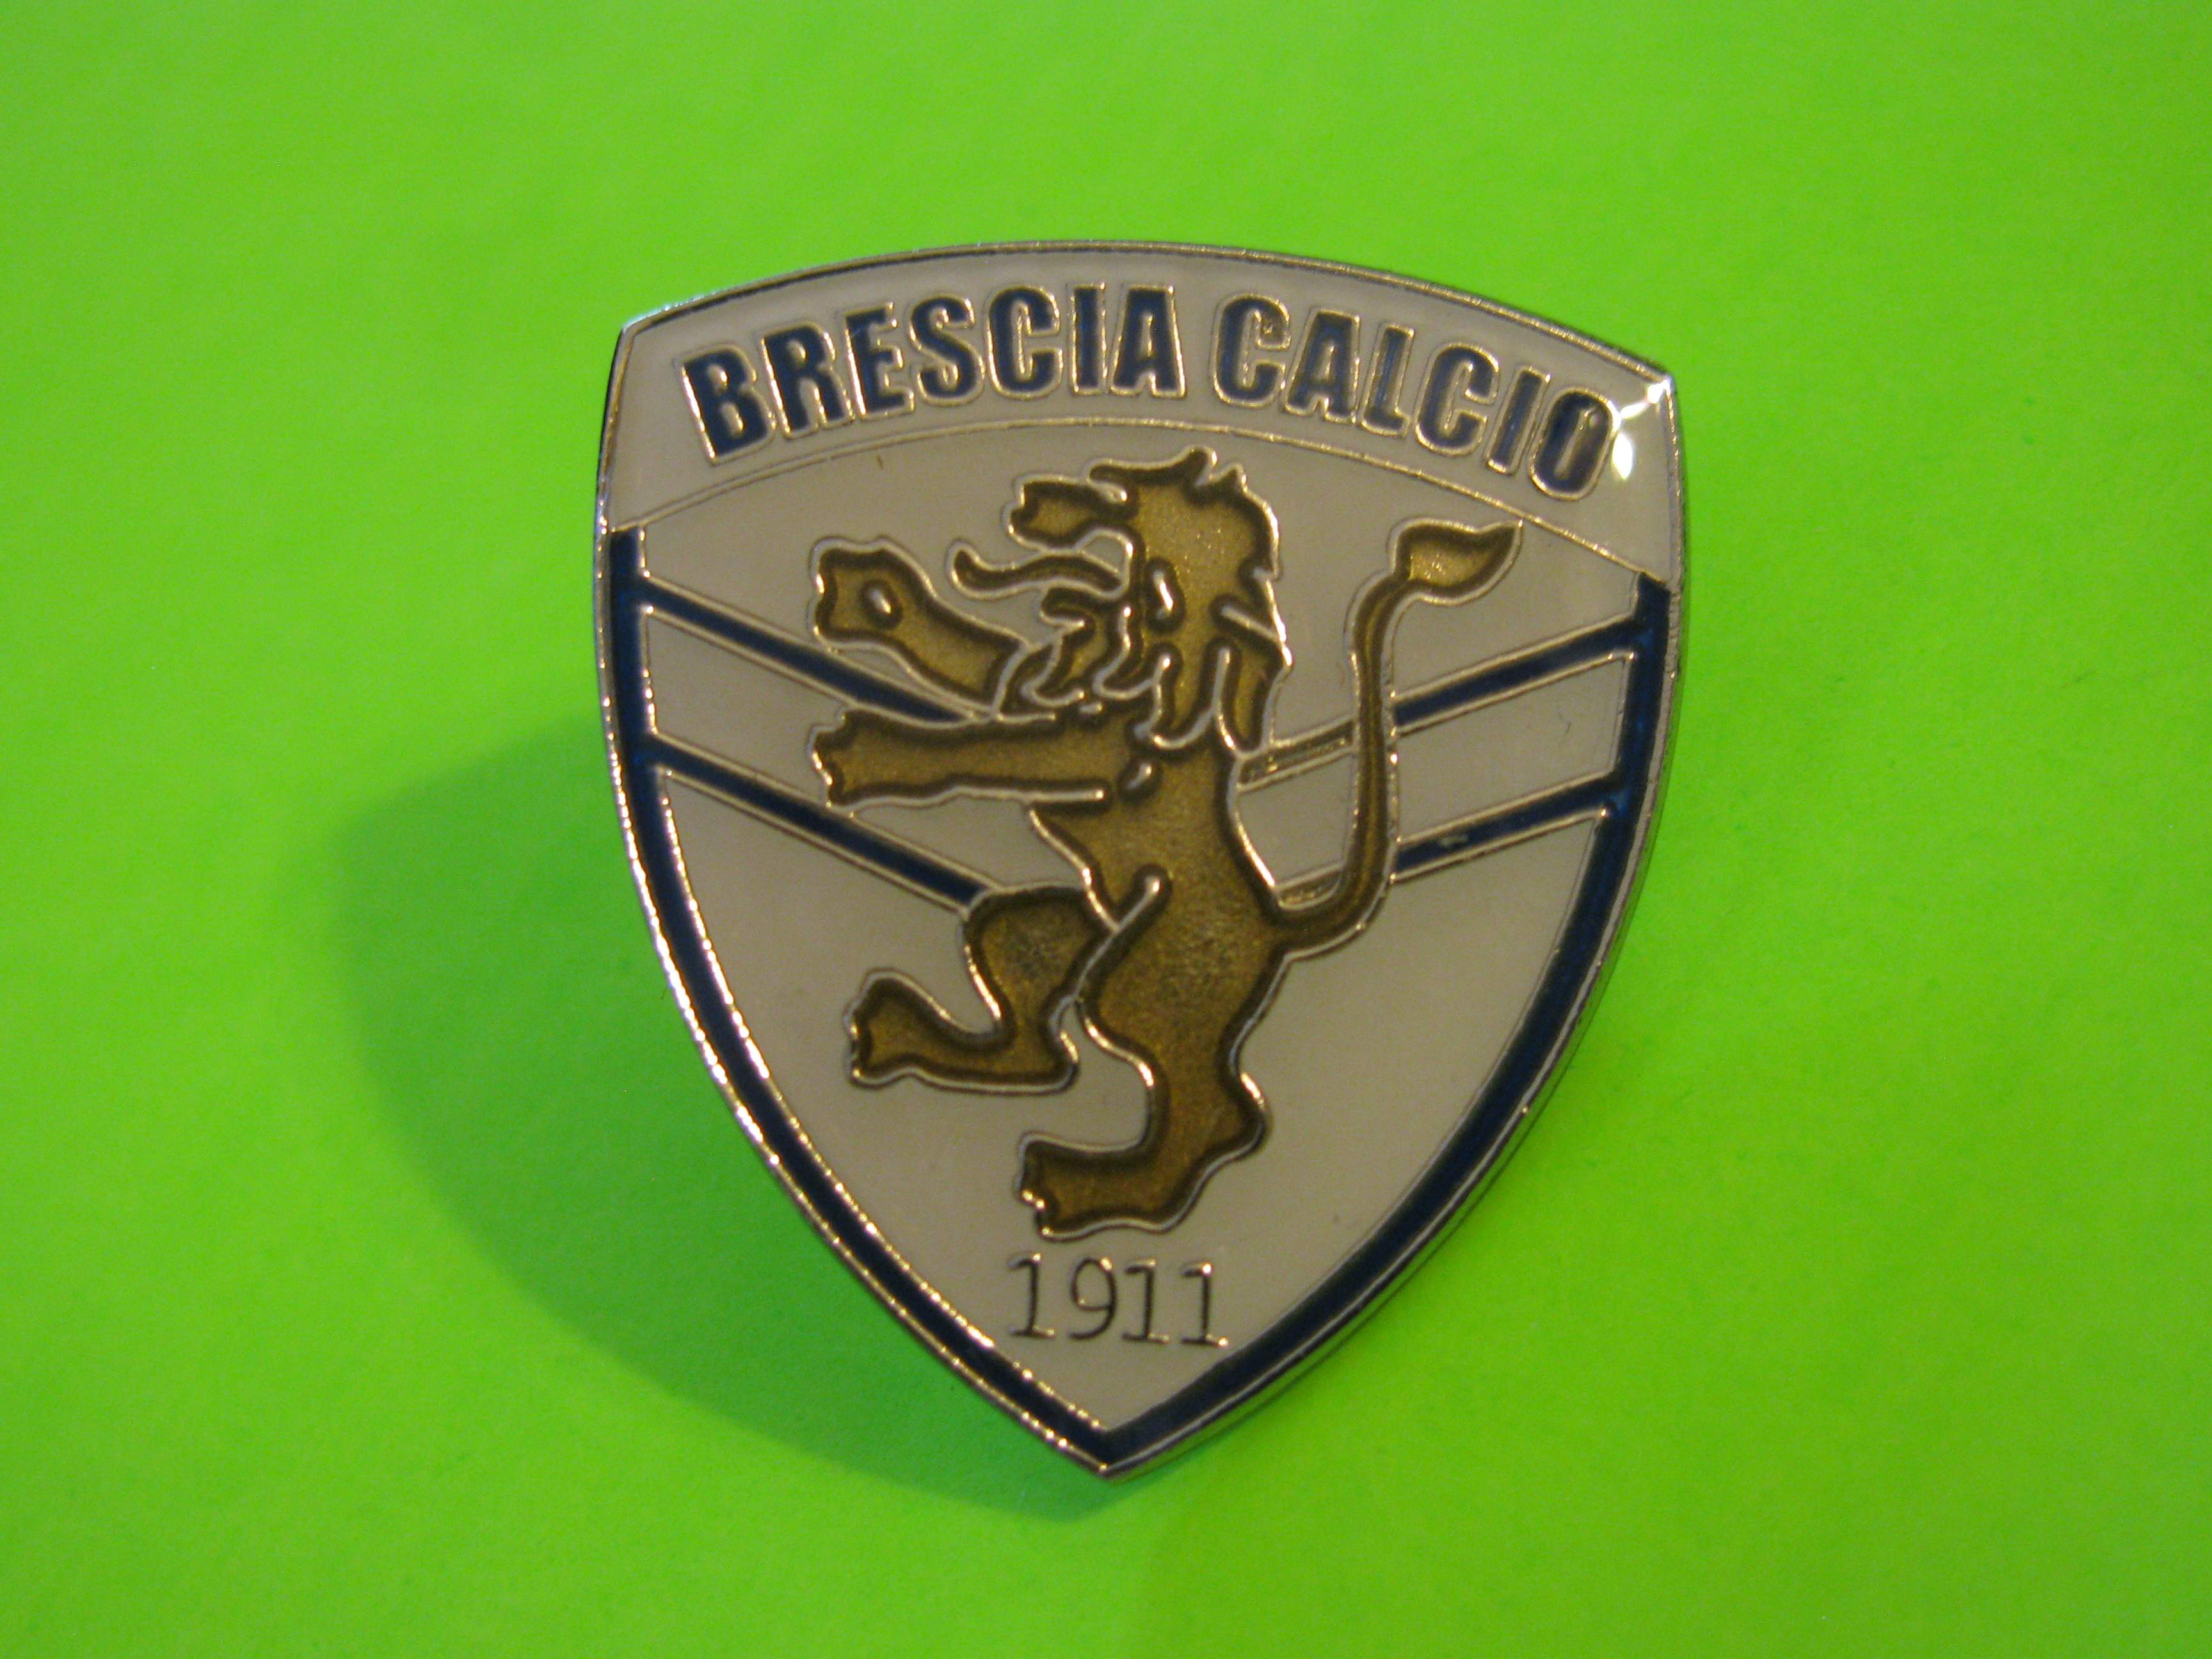 *SOLD* BRESCIA CALCIO 1911 Vintage Metal Pin with Butterfly Clutch